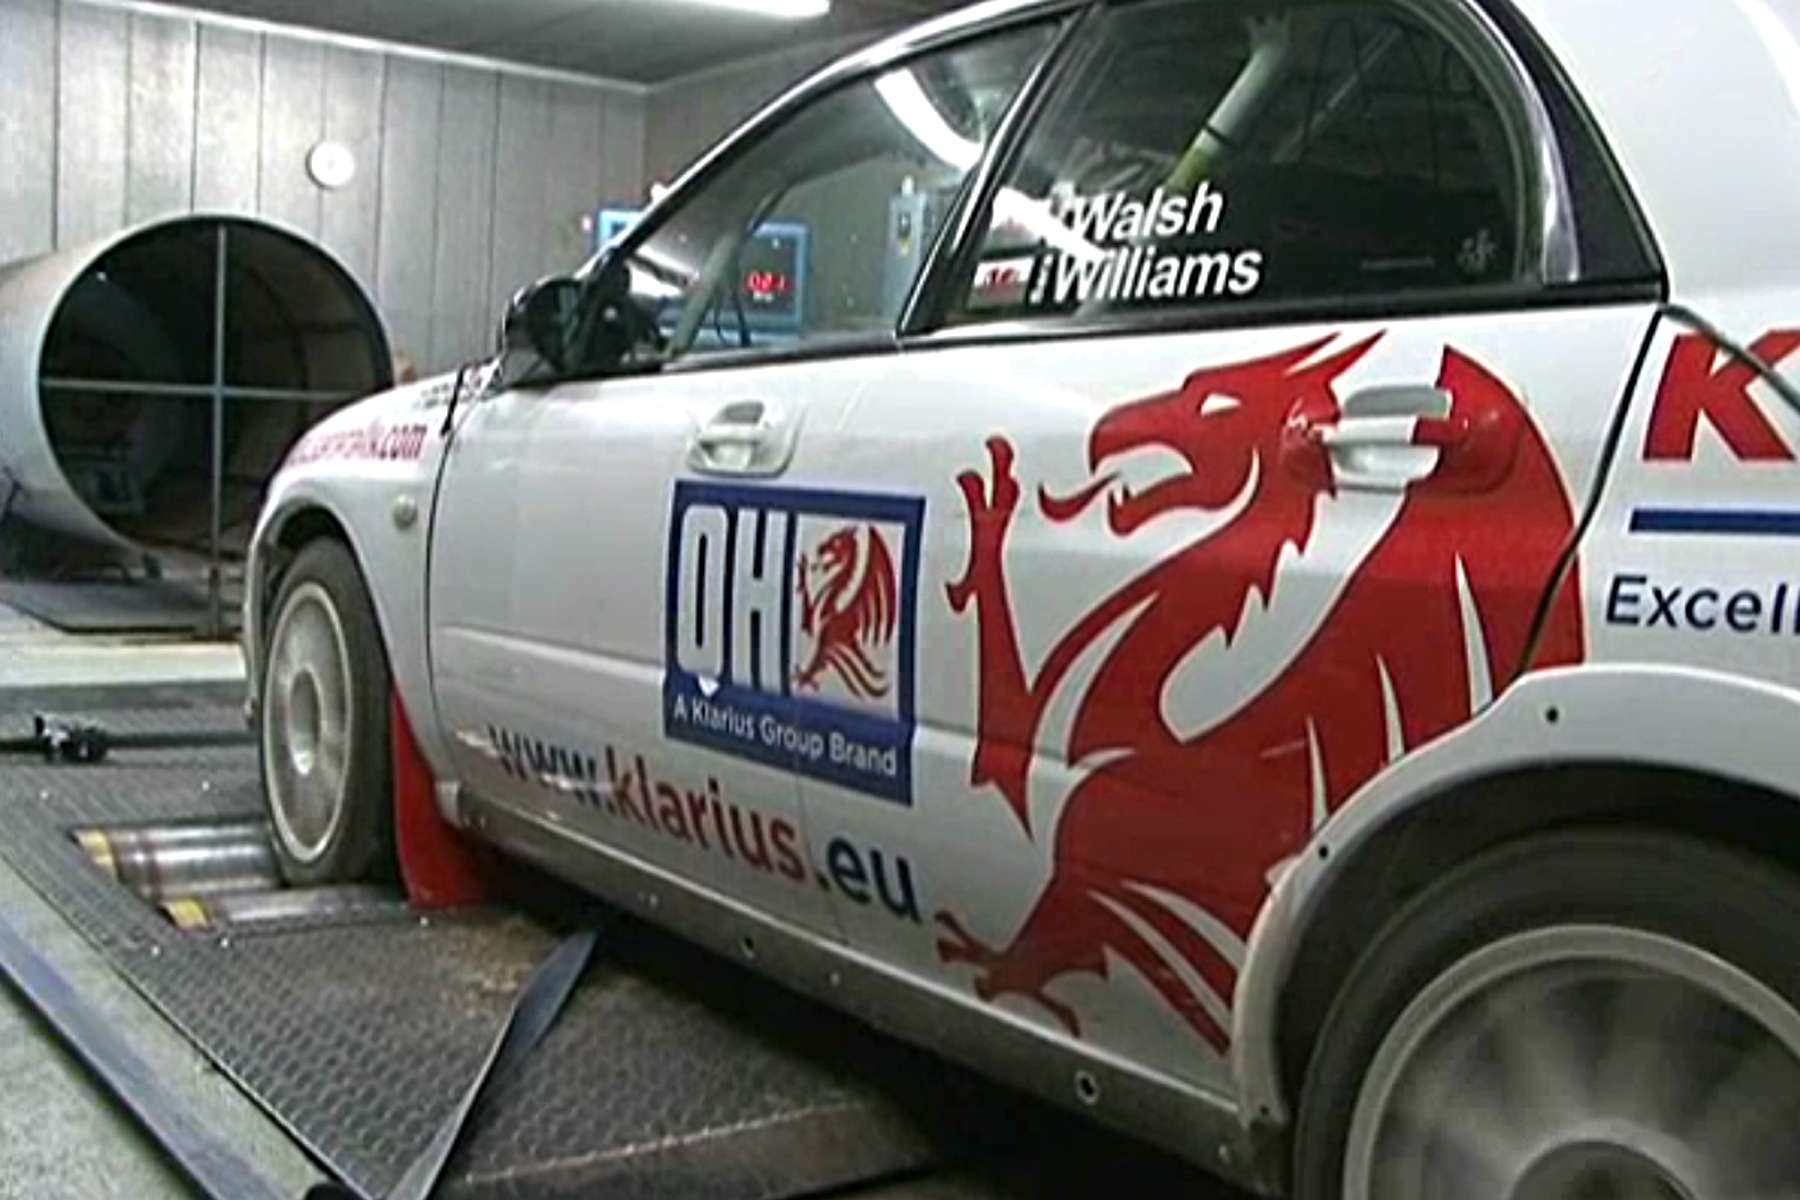 Road car components go rallying - developing Sara Williams' Subaru for the 2012 season